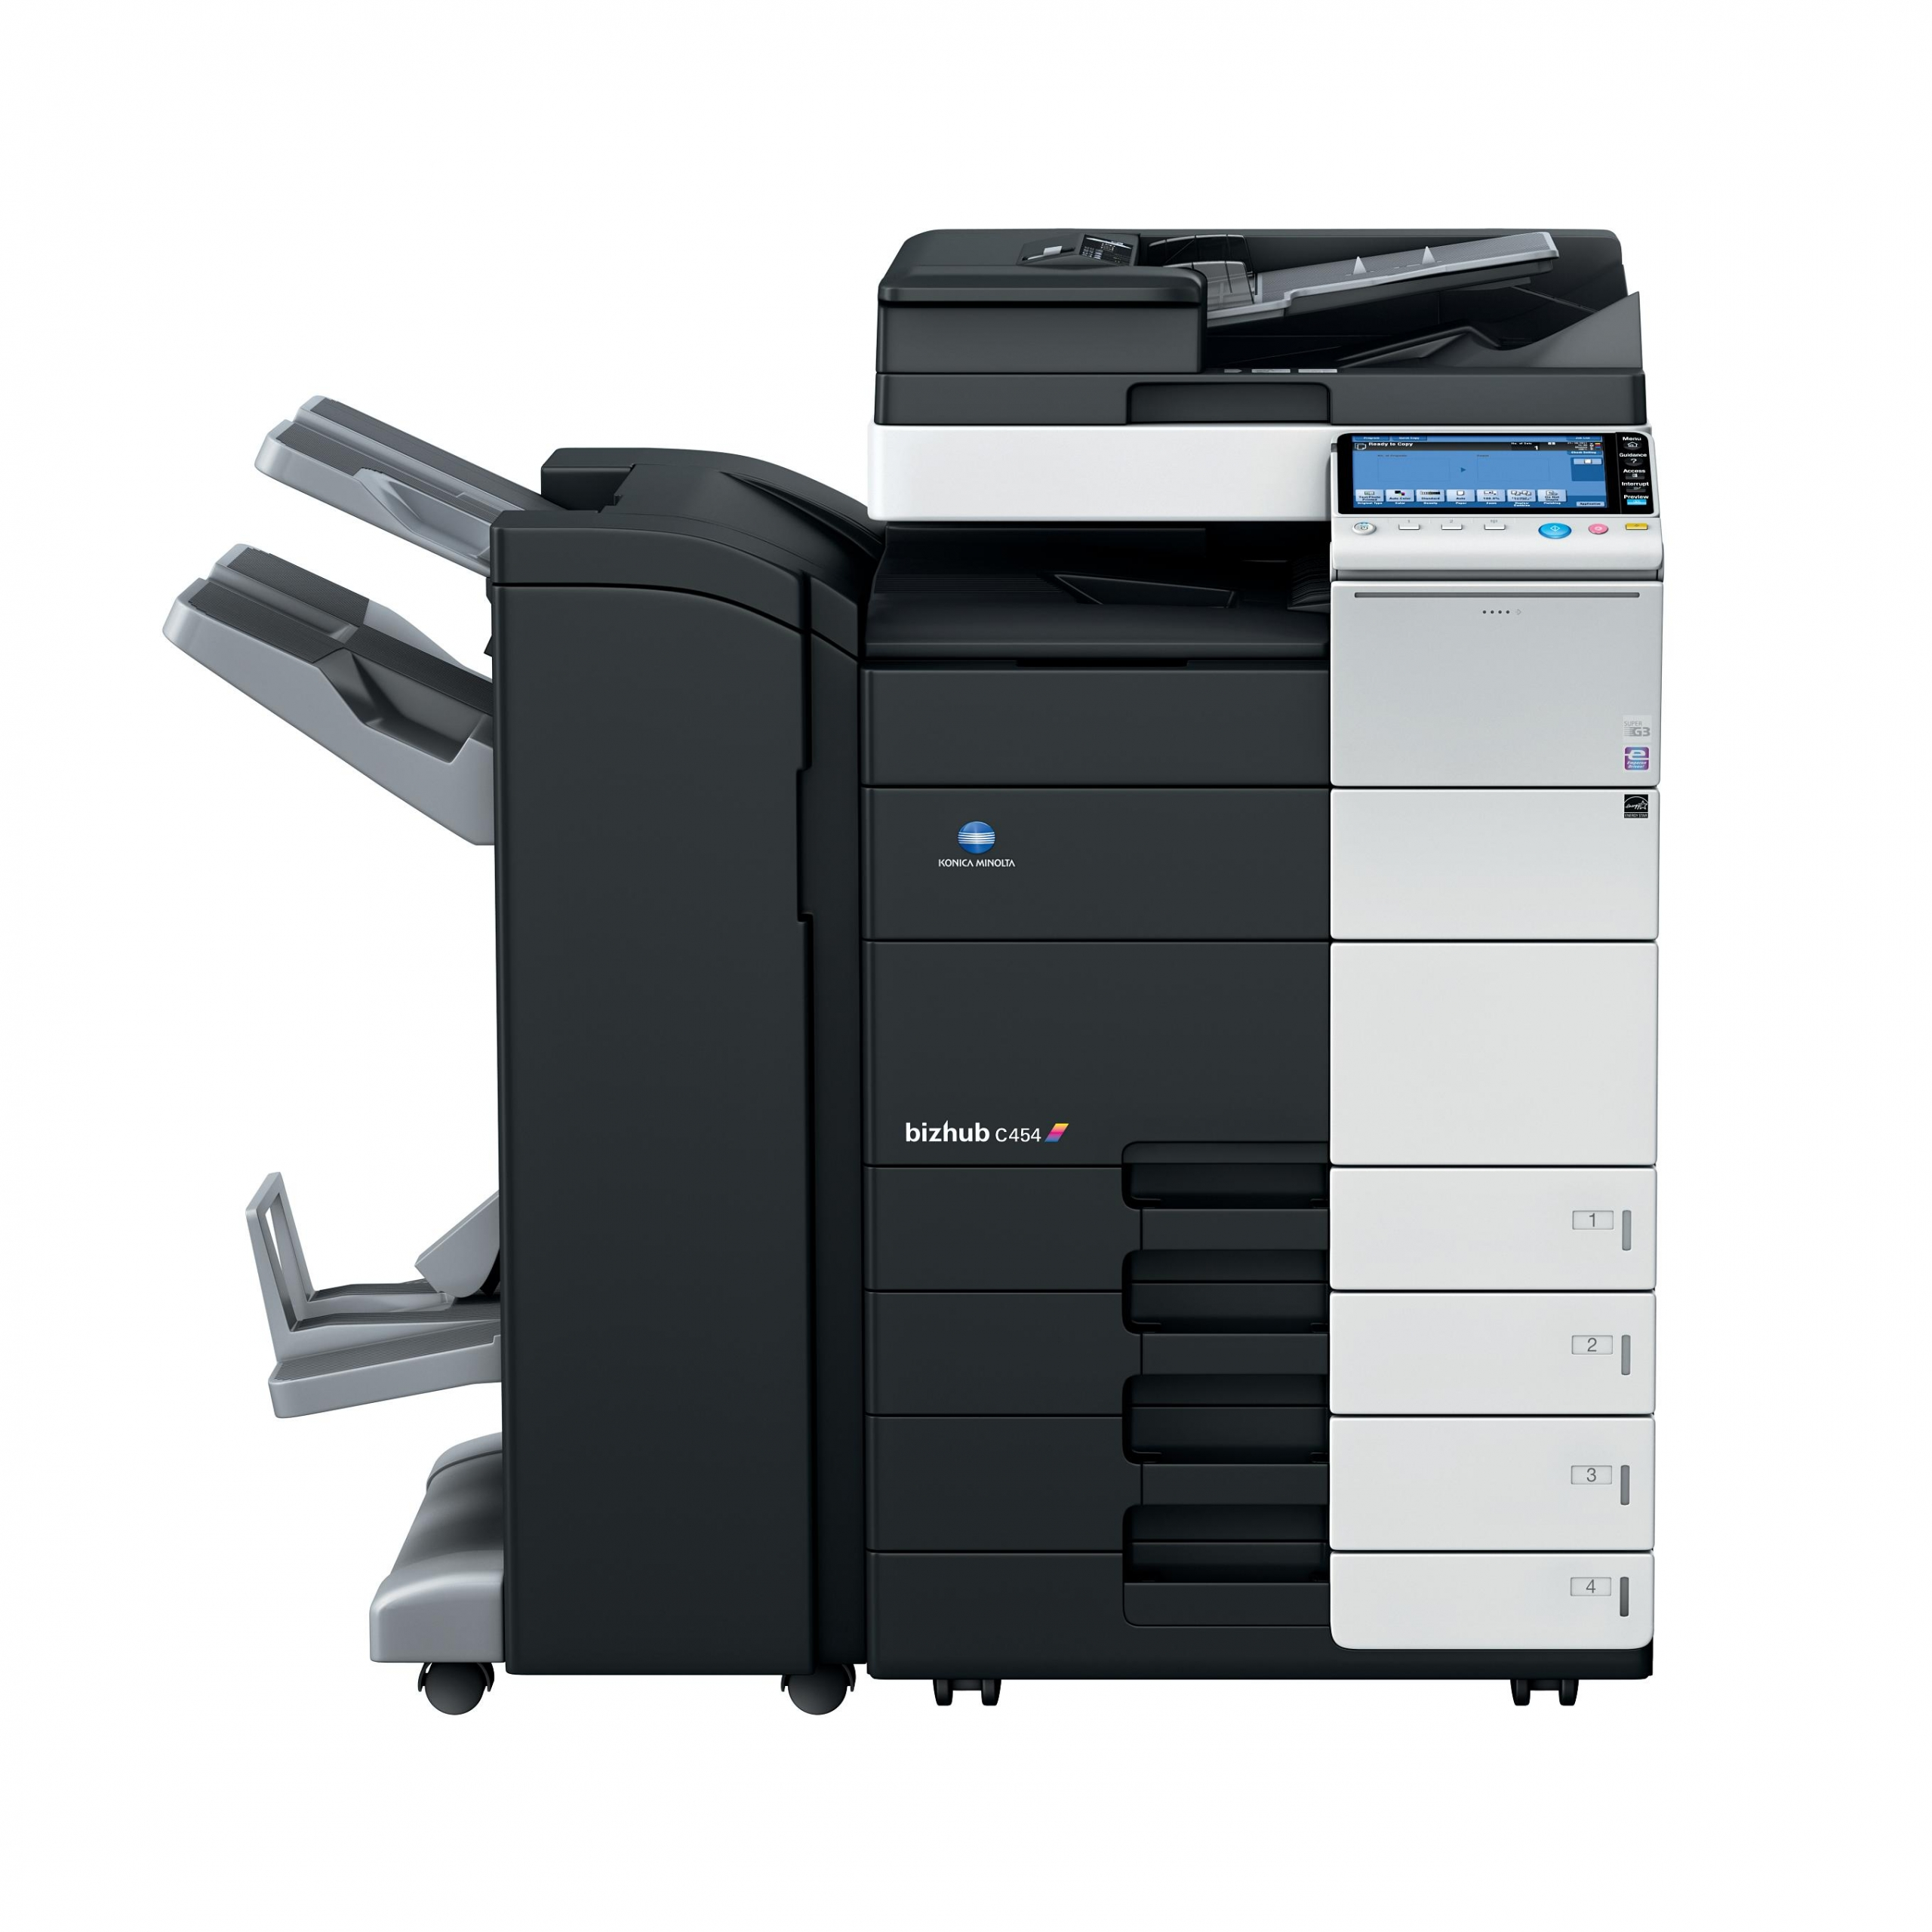 Why OneDoc Managed Print Services Supports Konica Minolta Printing Solutions